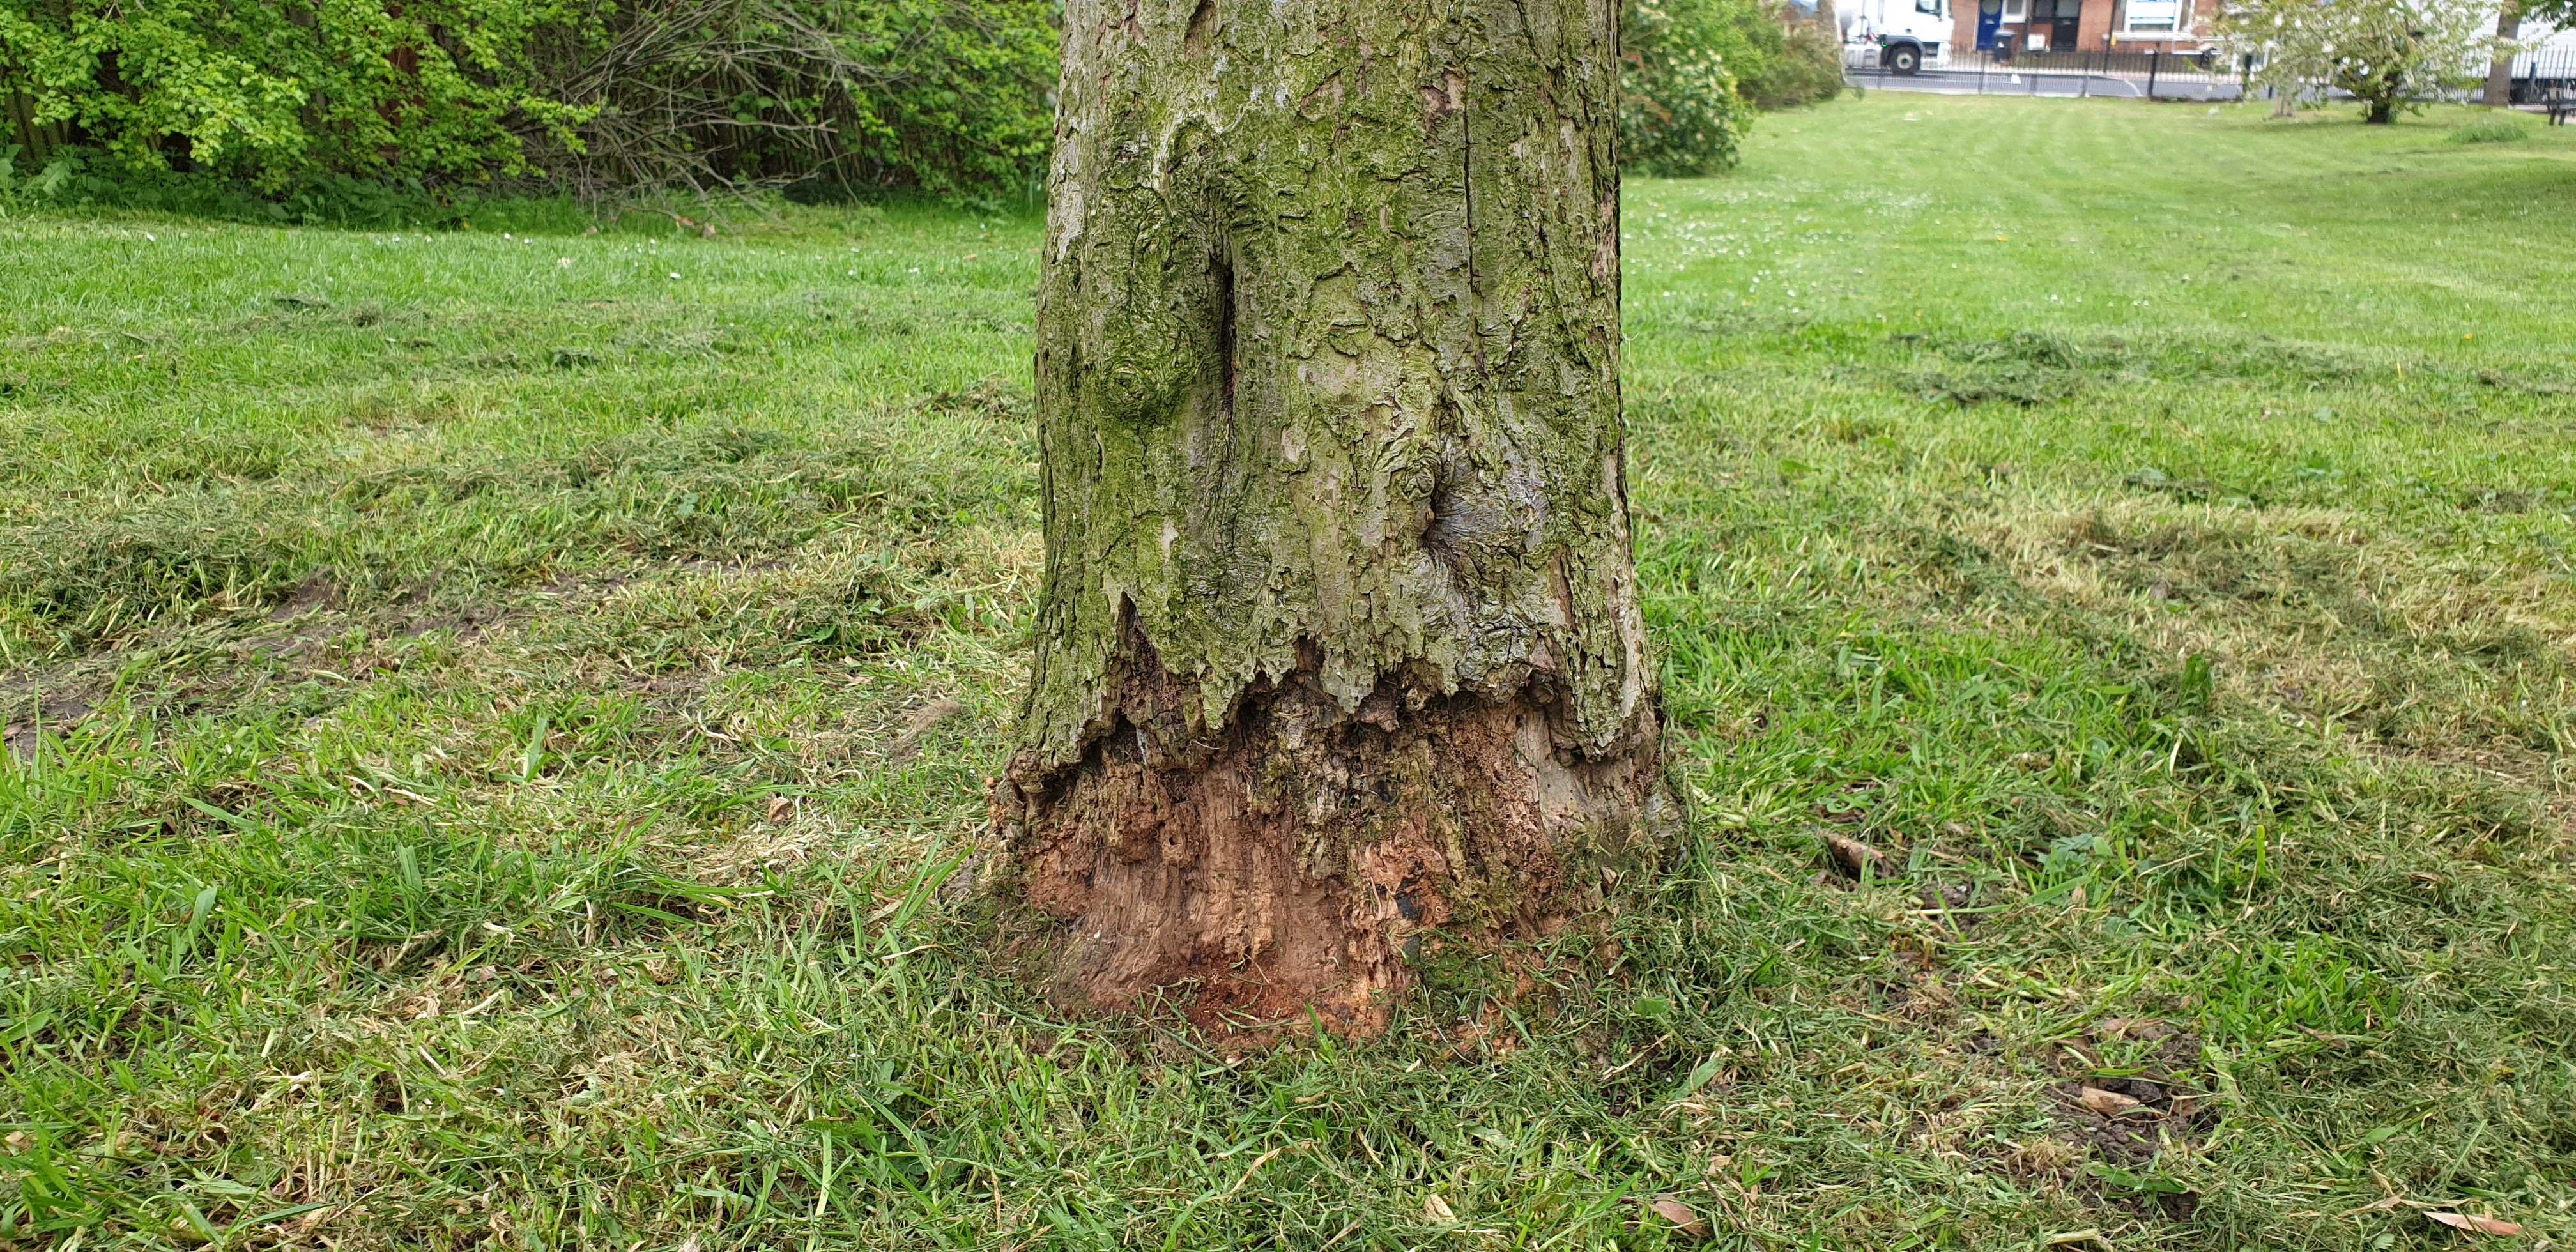 Recurring strimmer / brush cutter tree stem damage at Mountsfield Park April 2019